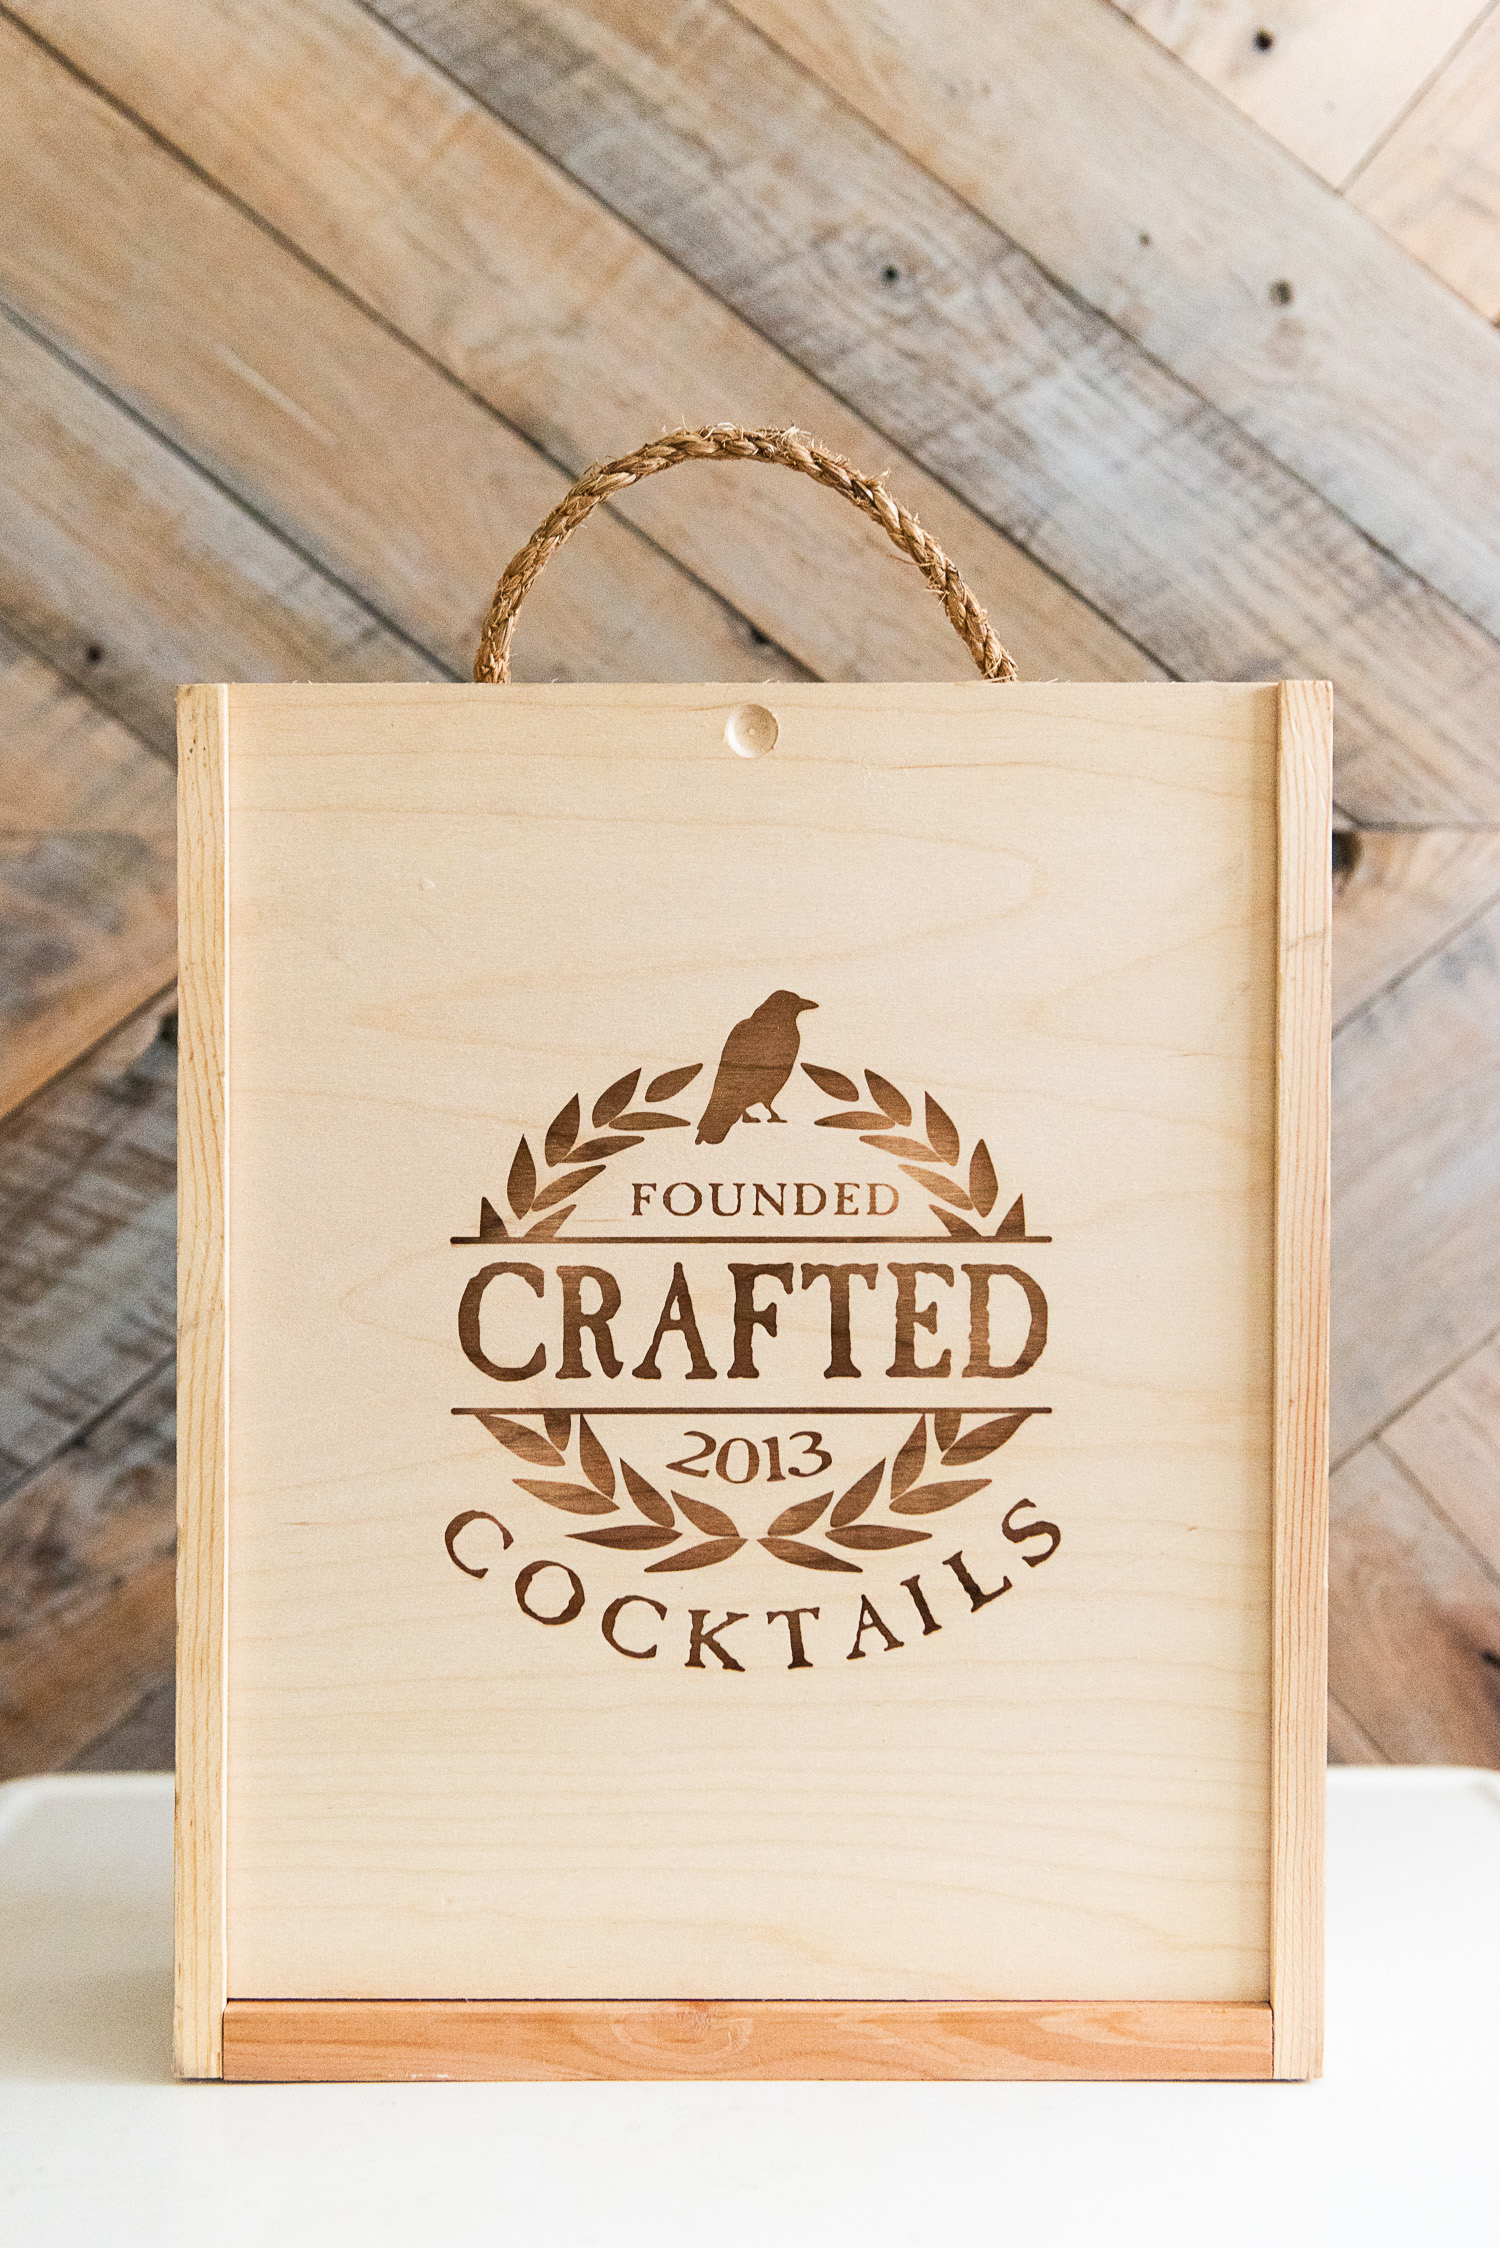 How to turn a liquor crate into a craft box